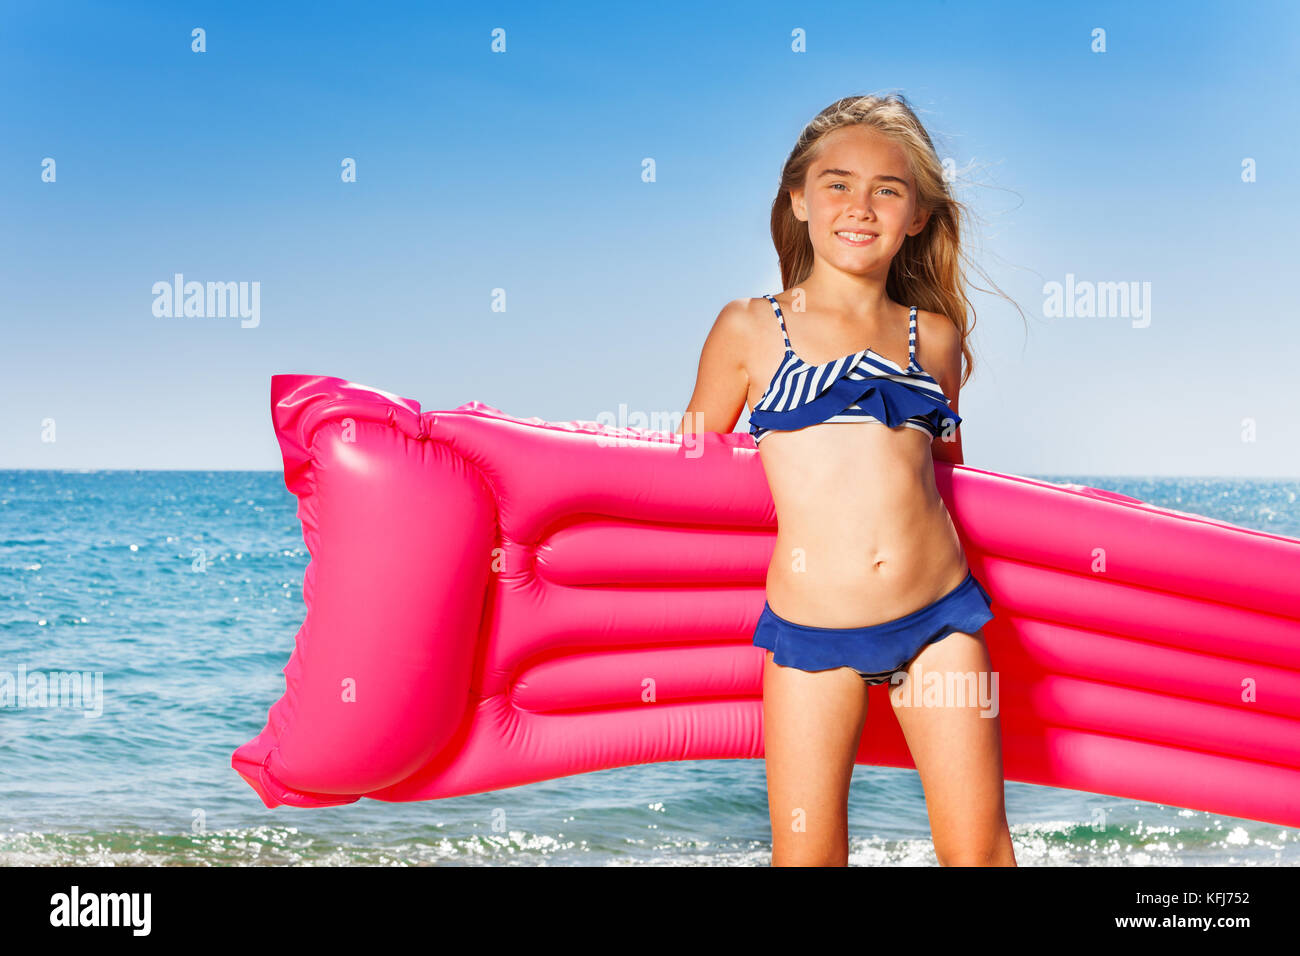 Preteen Girl Beach Portrait Stock Photos & Preteen Girl ...